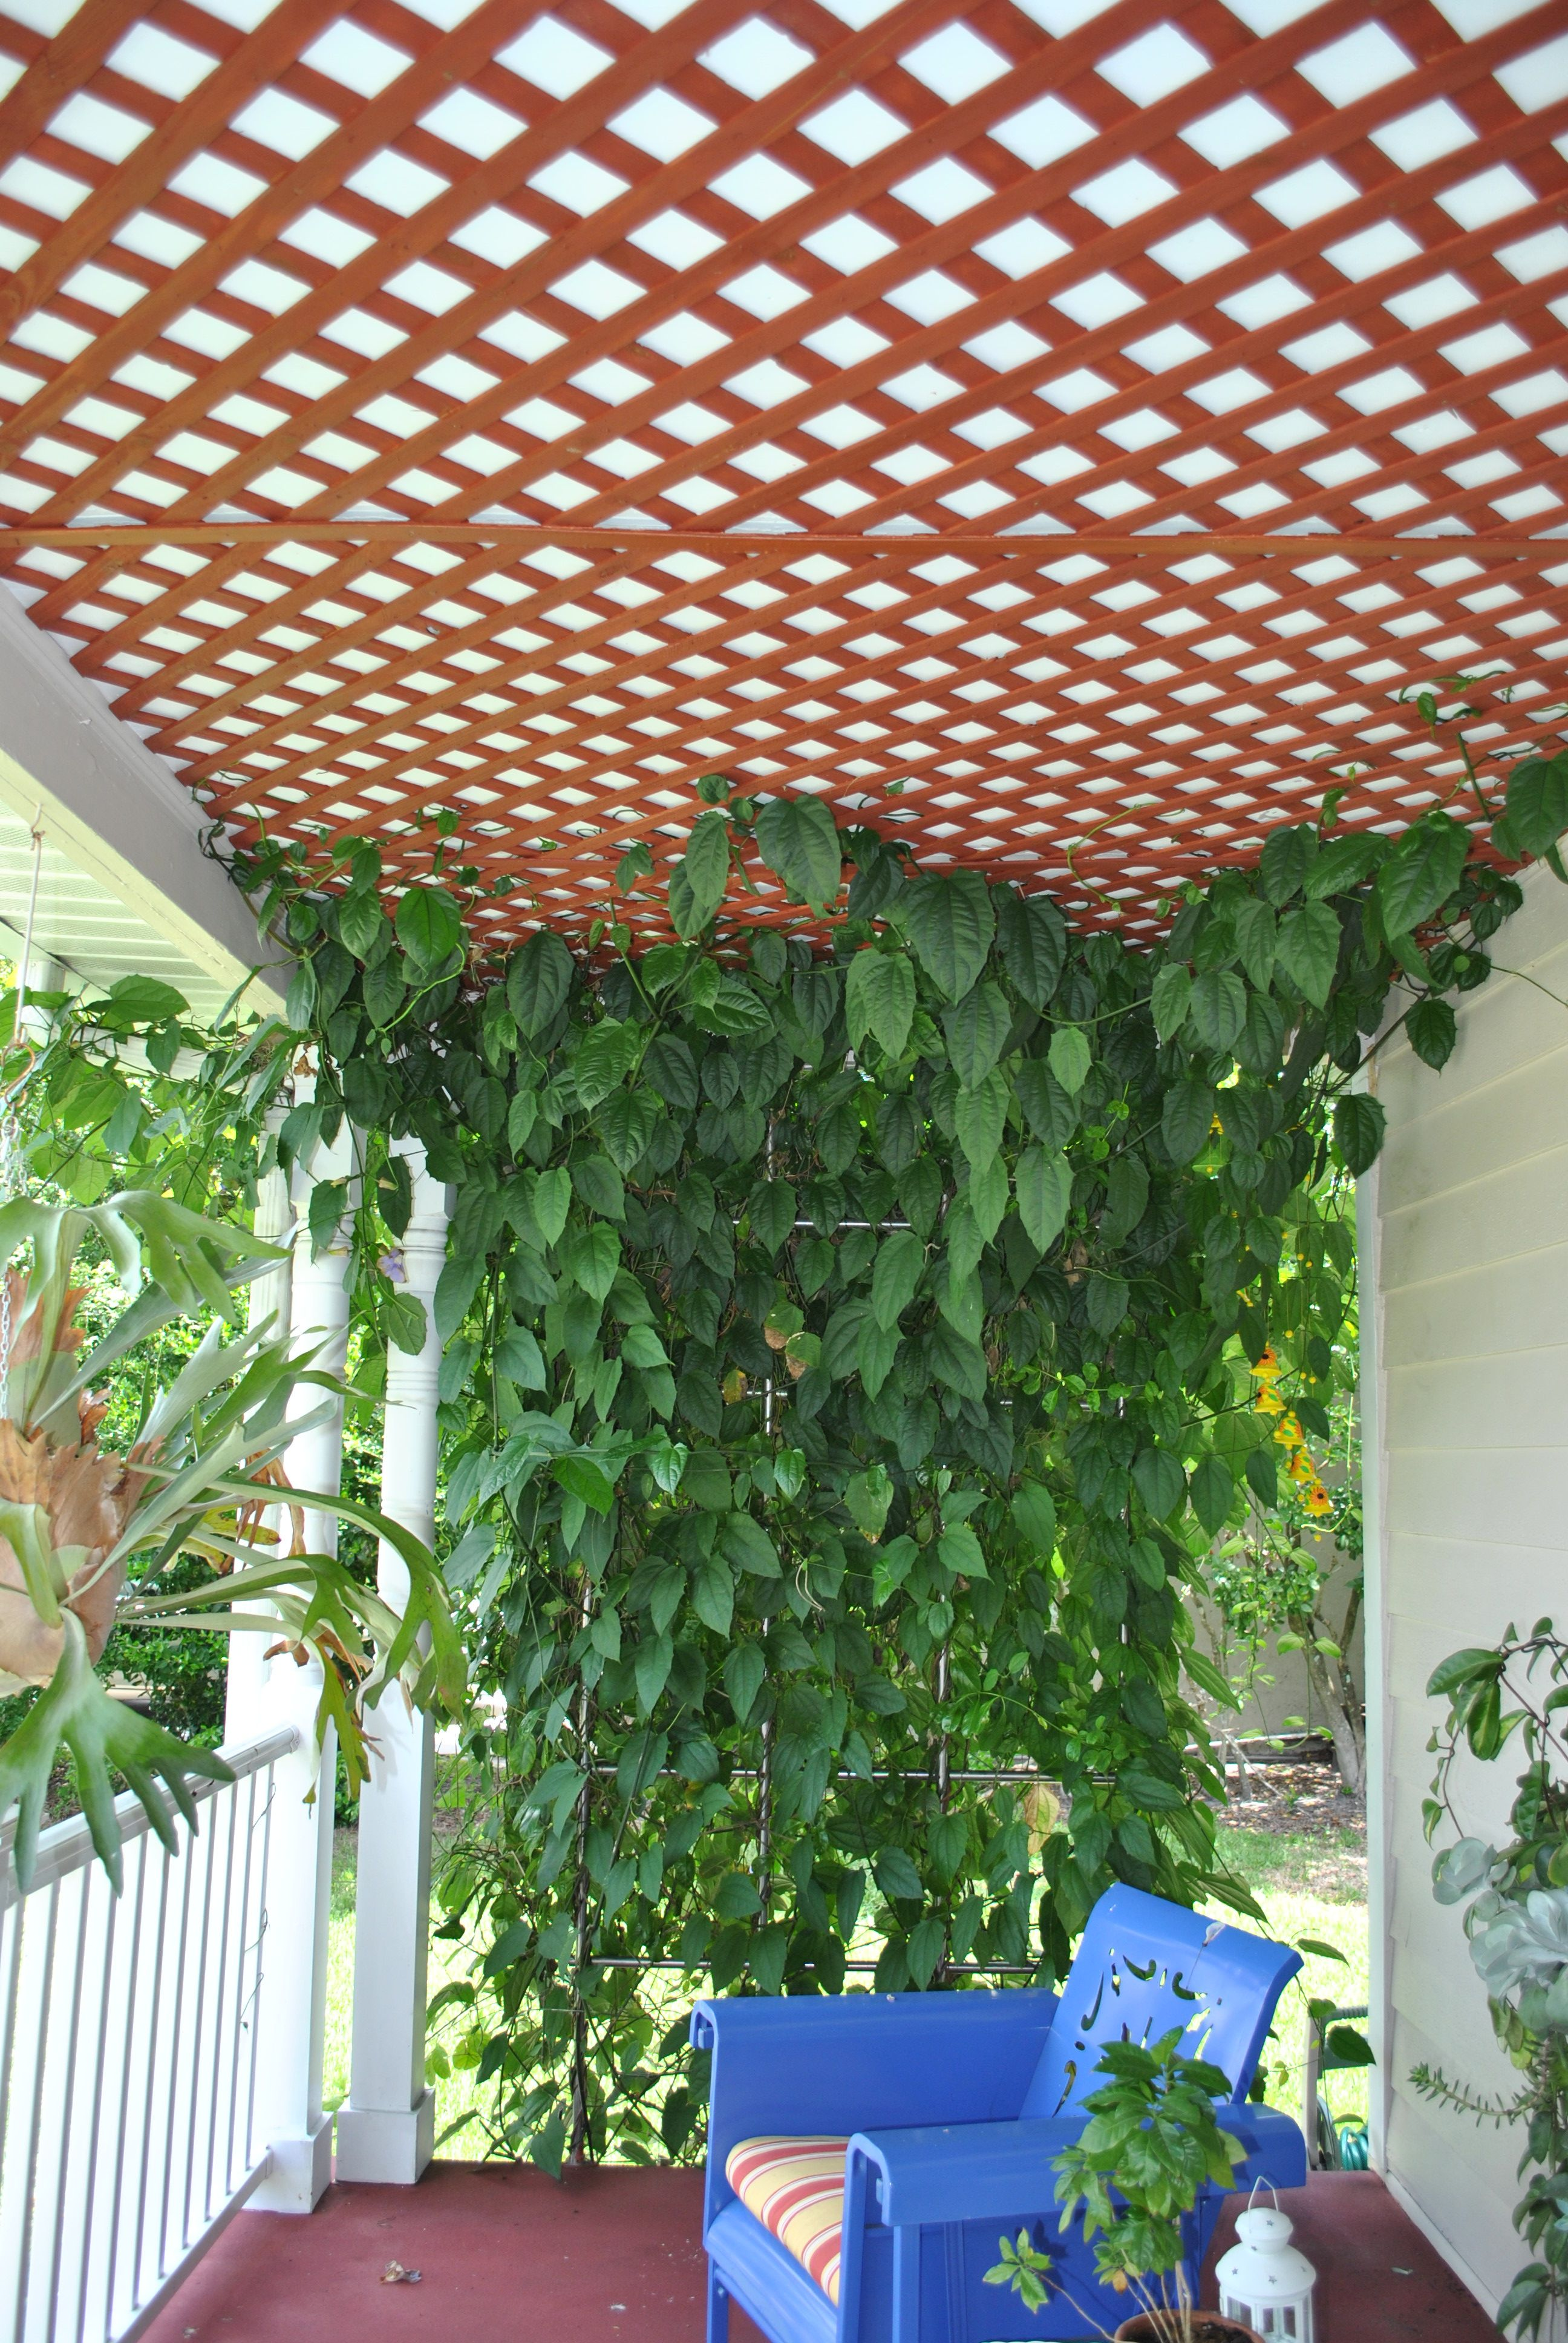 Pin By Ginny Creel On Outdoor Living Climbing Plants Front Porch Decorating Air Purifying House Plants